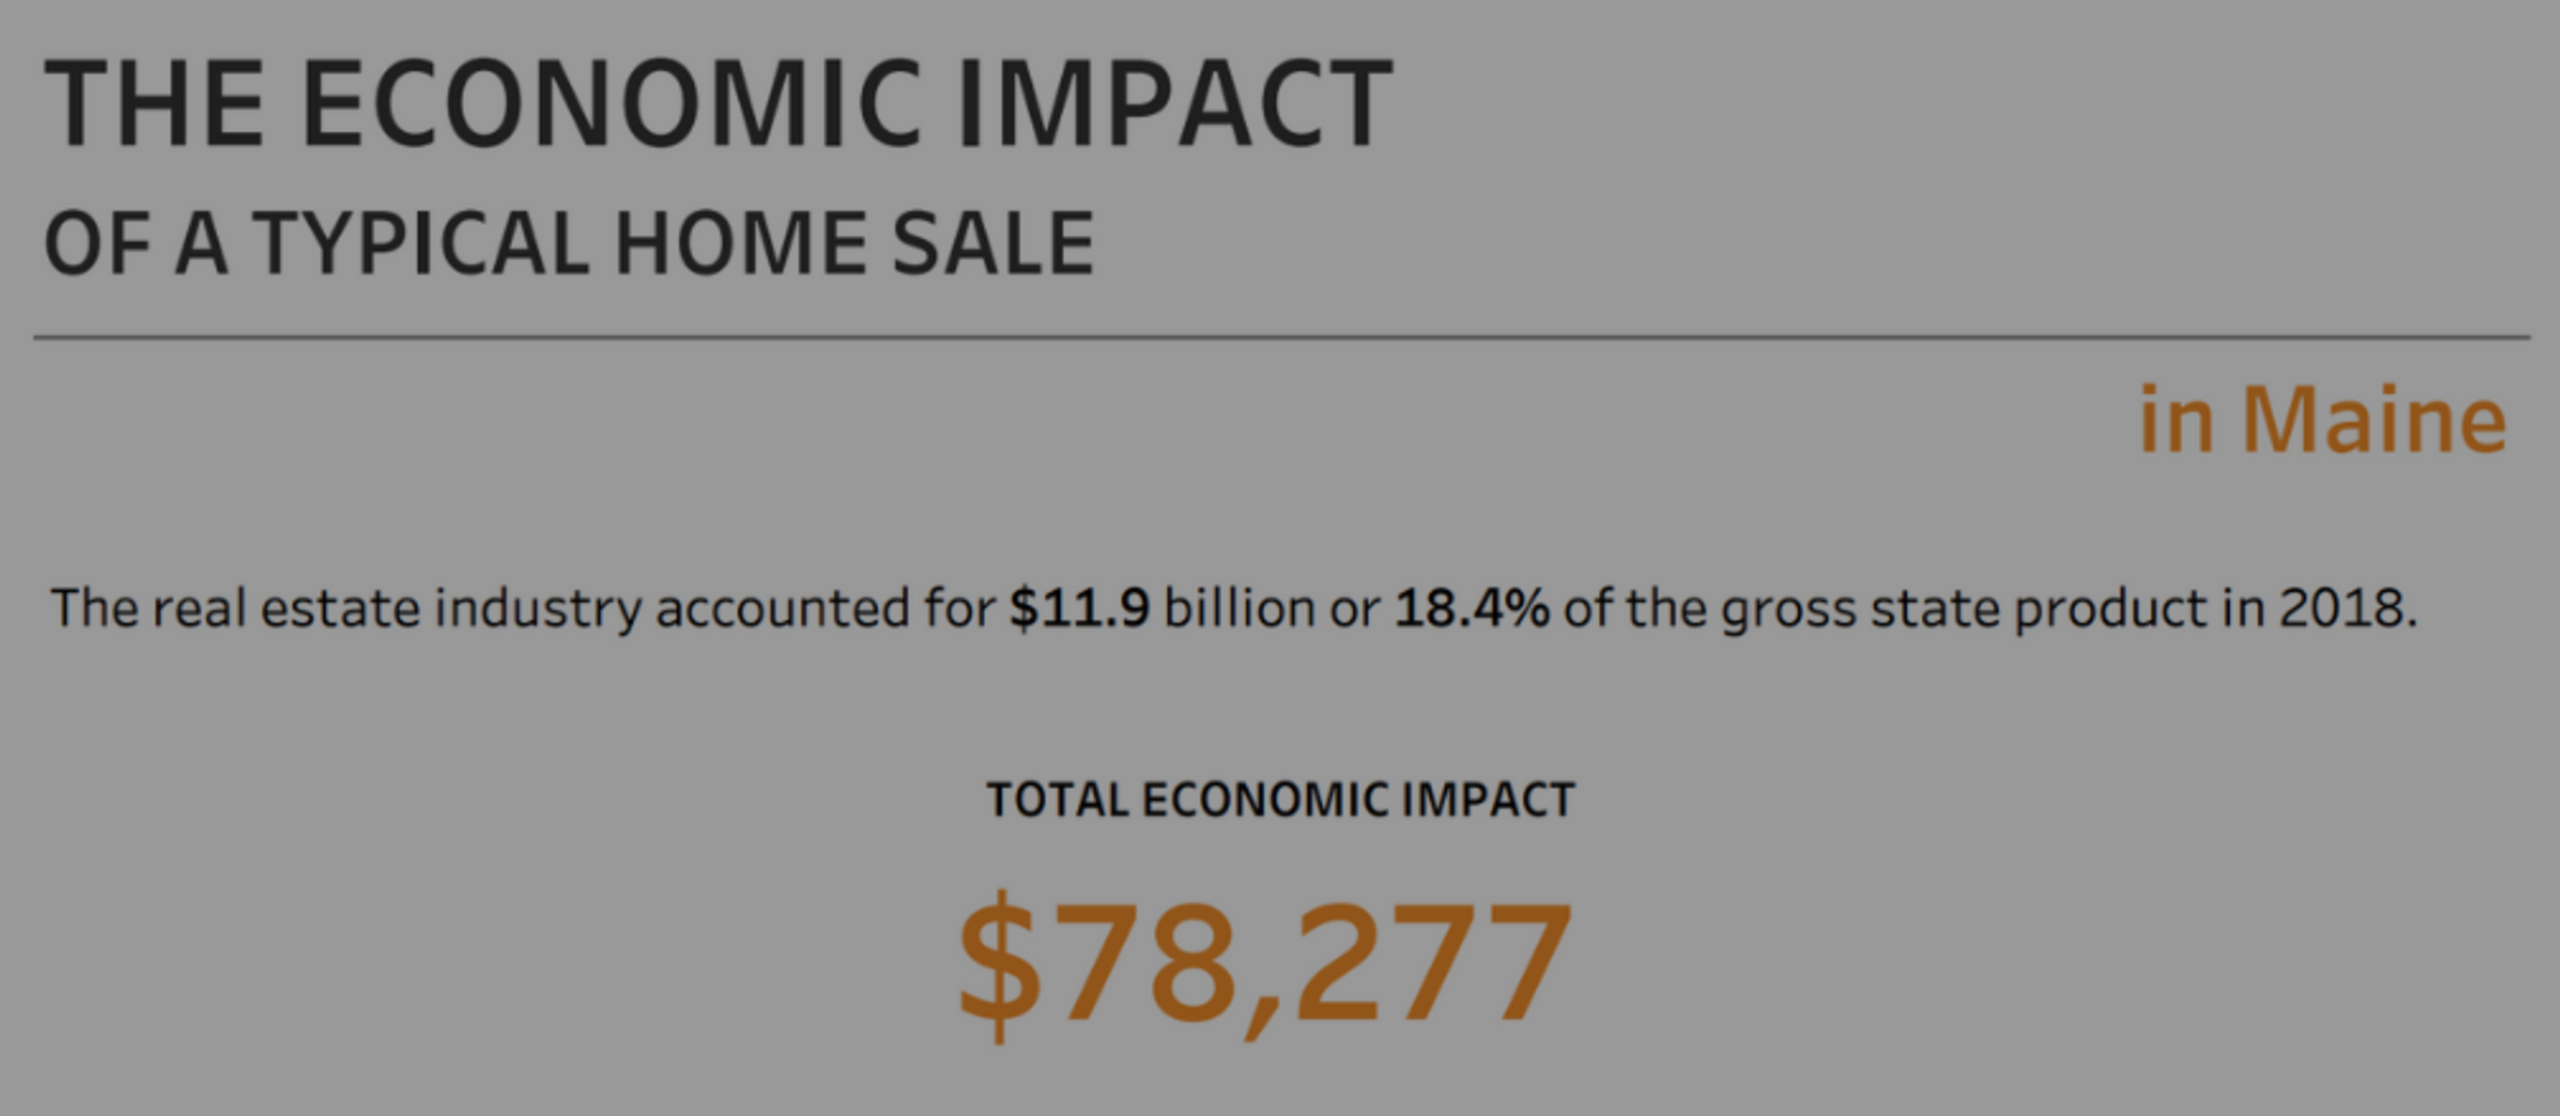 The Economic Impact of a Typical Home Sale in Maine